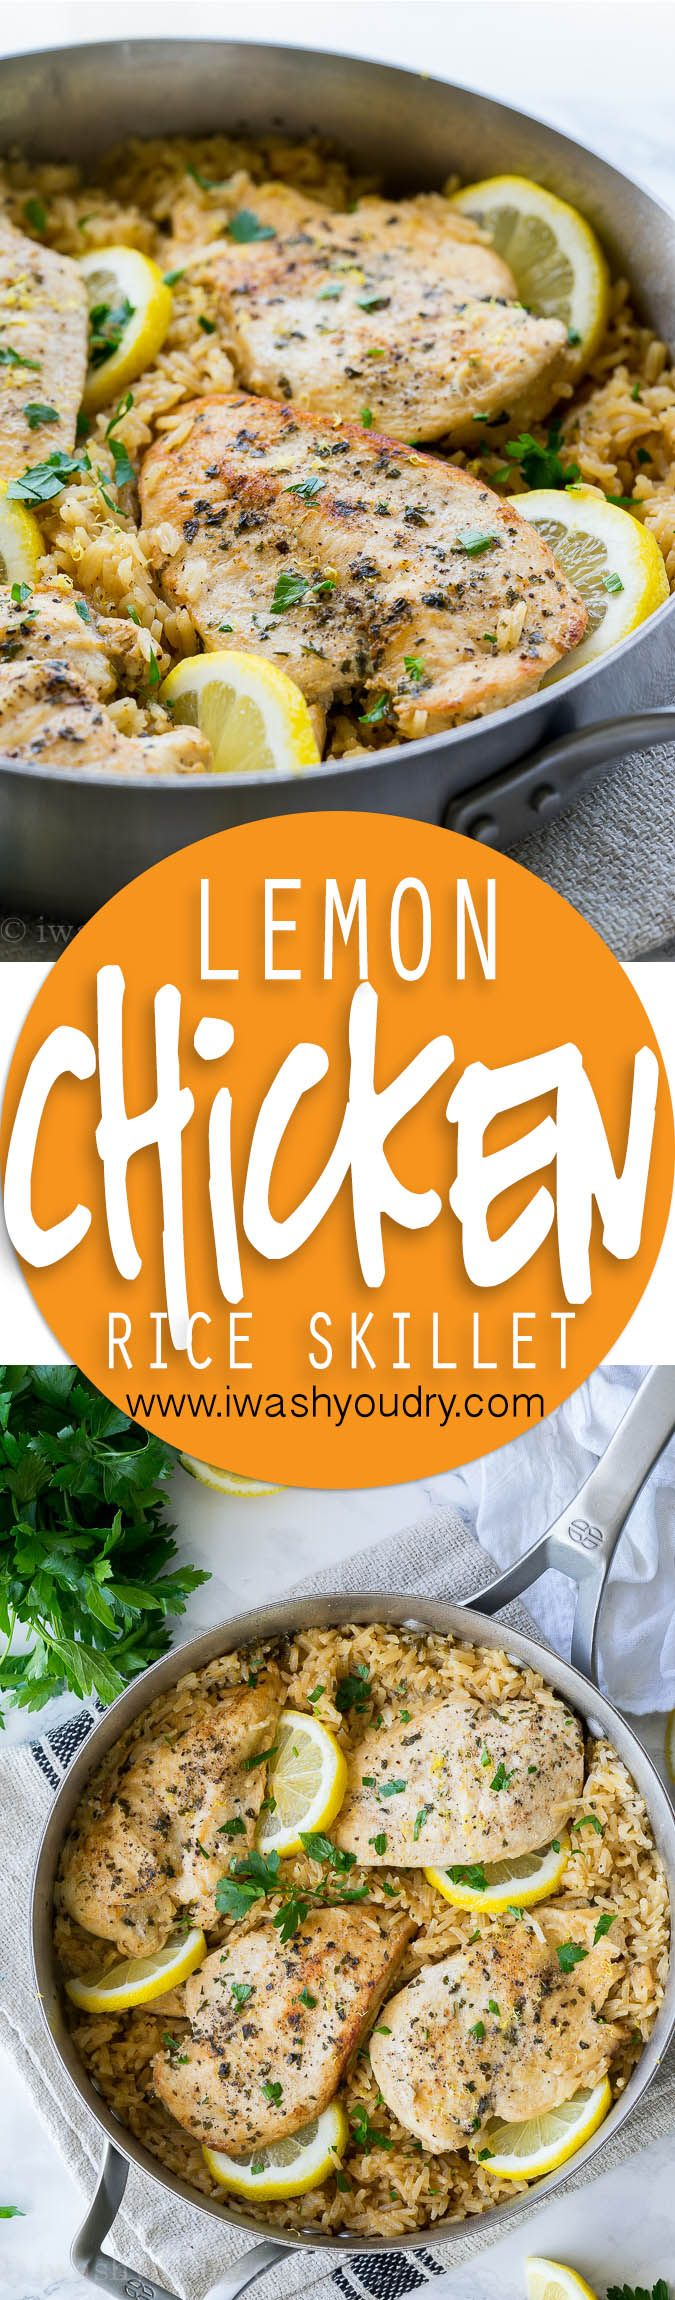 This Lemon Chicken Rice Skillet is all made in ONE PAN and is a super easy and delicious weeknight dinner recipe!